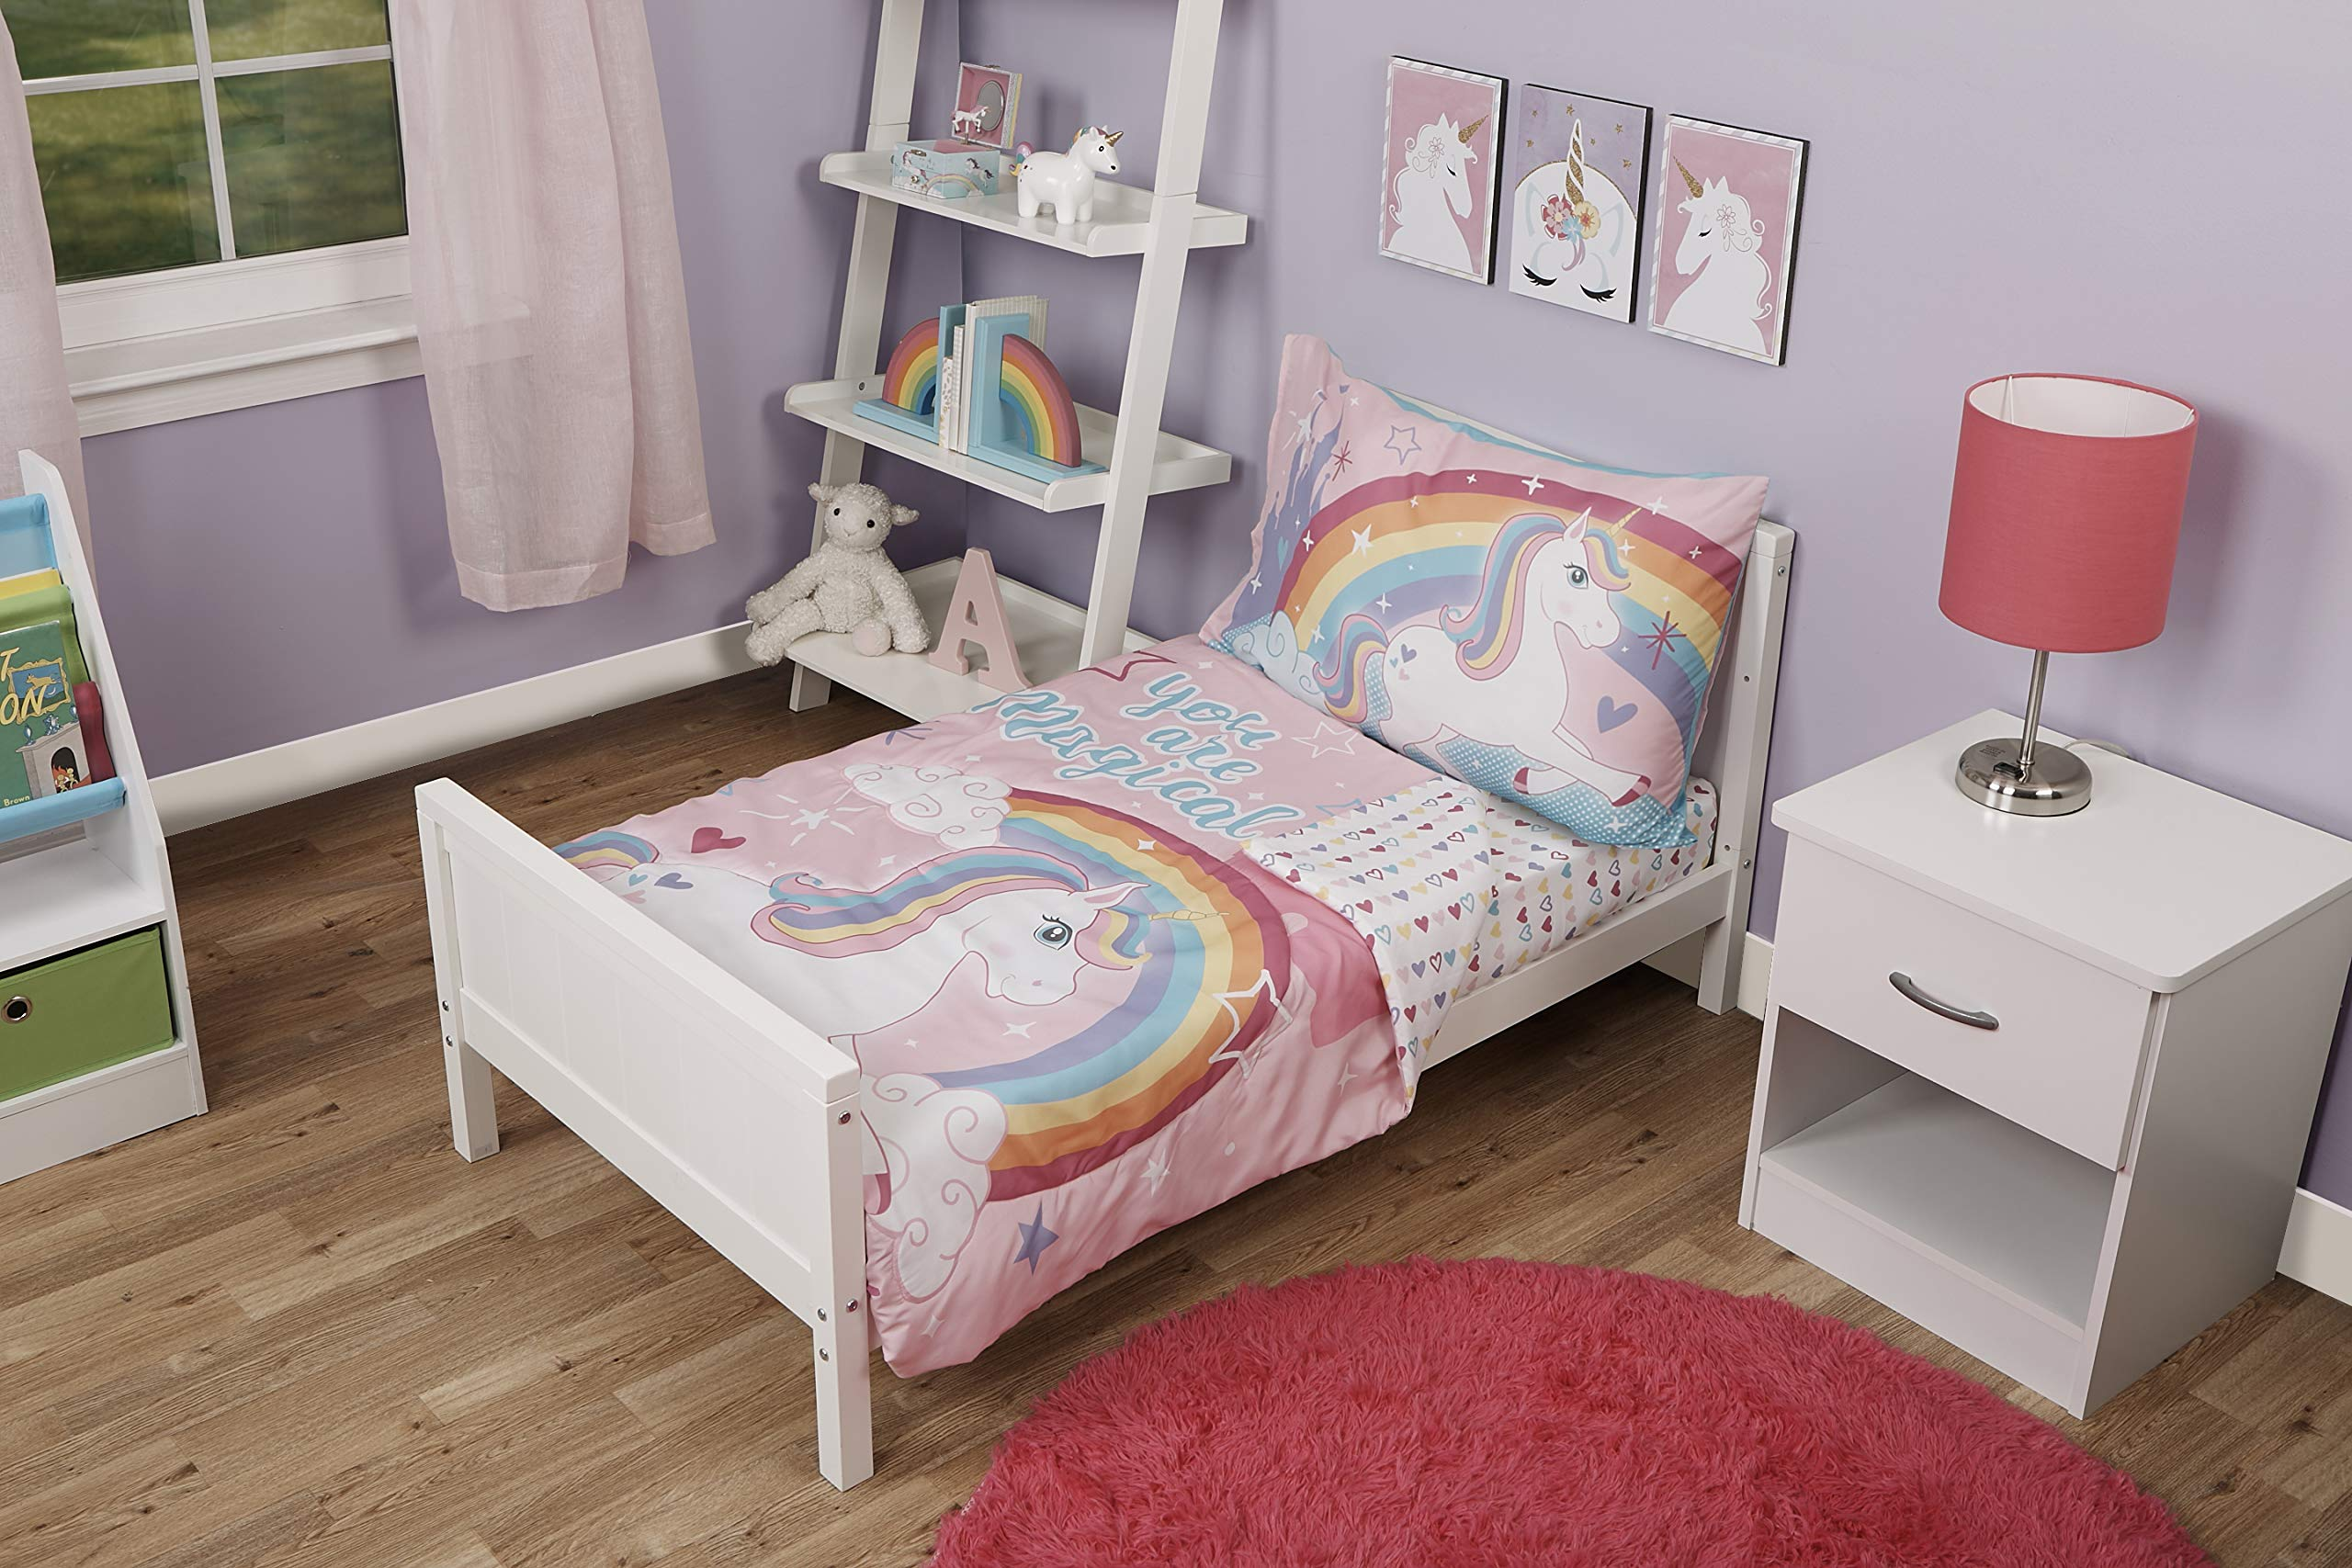 Funhouse 4 Piece Toddler Bedding Set - Includes Quilted Comforter, Fitted Sheet, Top Sheet, and Pillow Case - Unicorn Design for Girls Bed